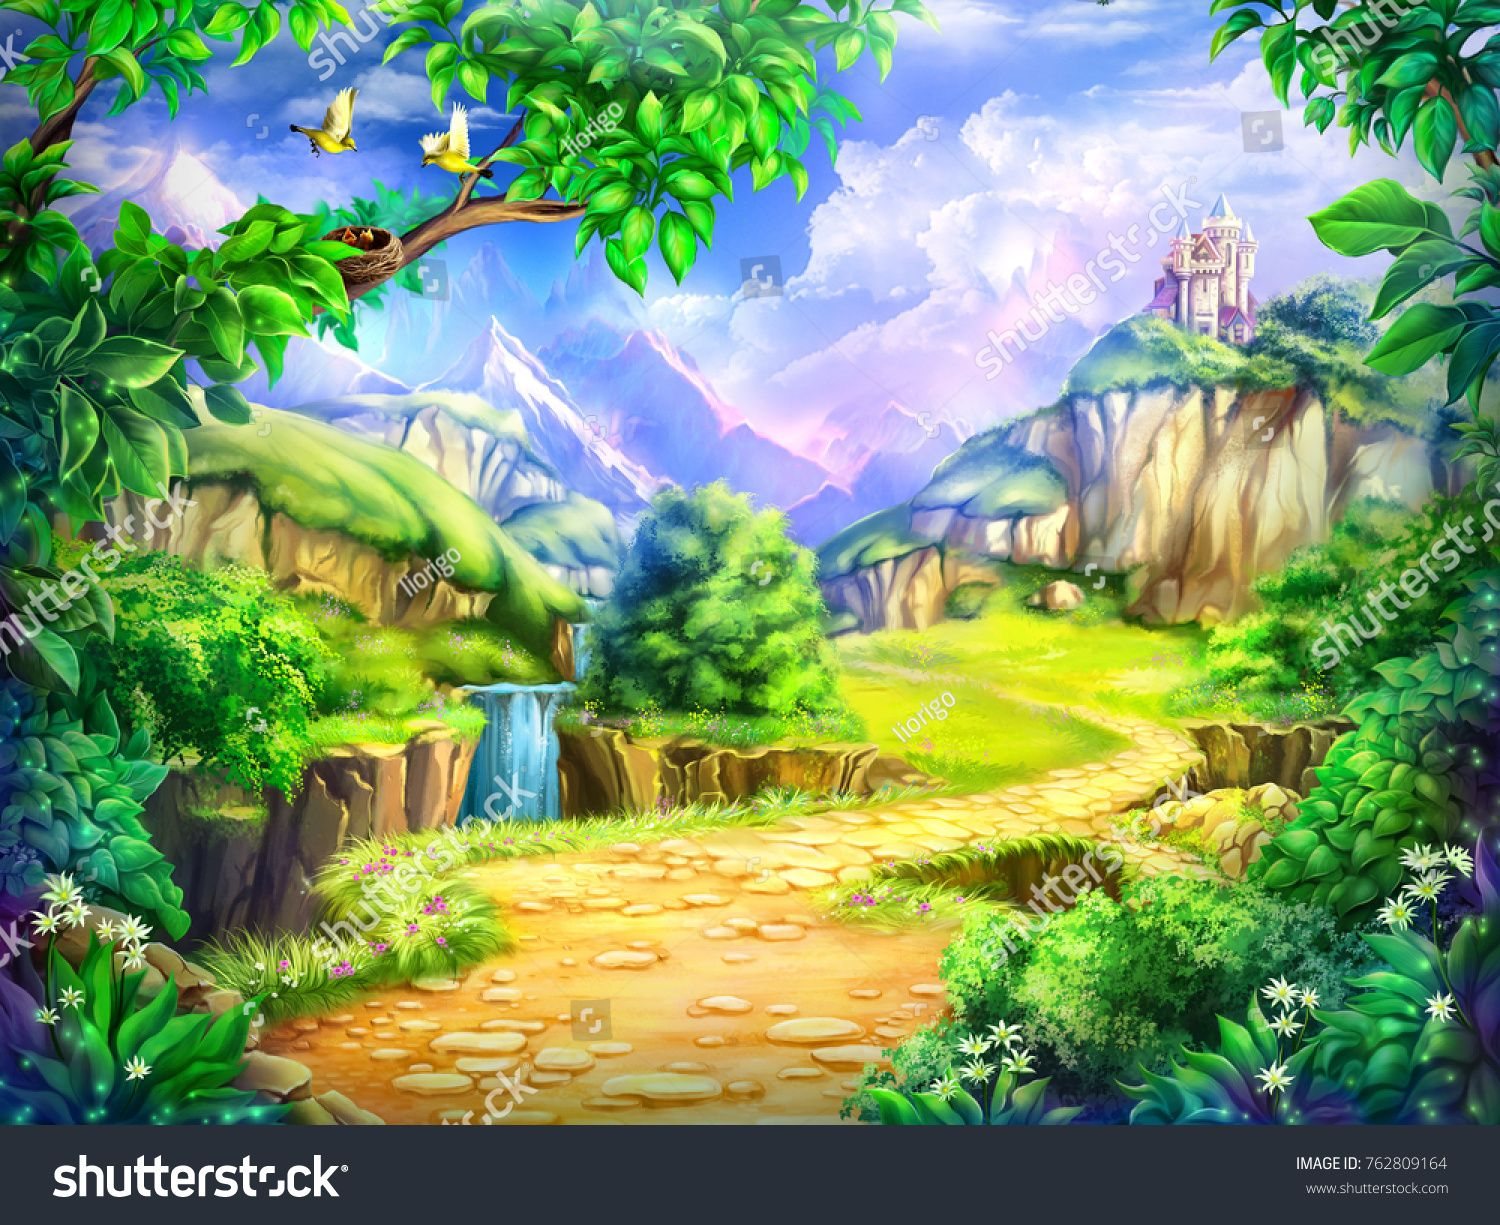 Fairy Tale Cartoon Background Digital Art Illustration Of A Fairytale Castle Road Mountains And Wate Cartoon Background Fairytale Illustration Fairy Tales